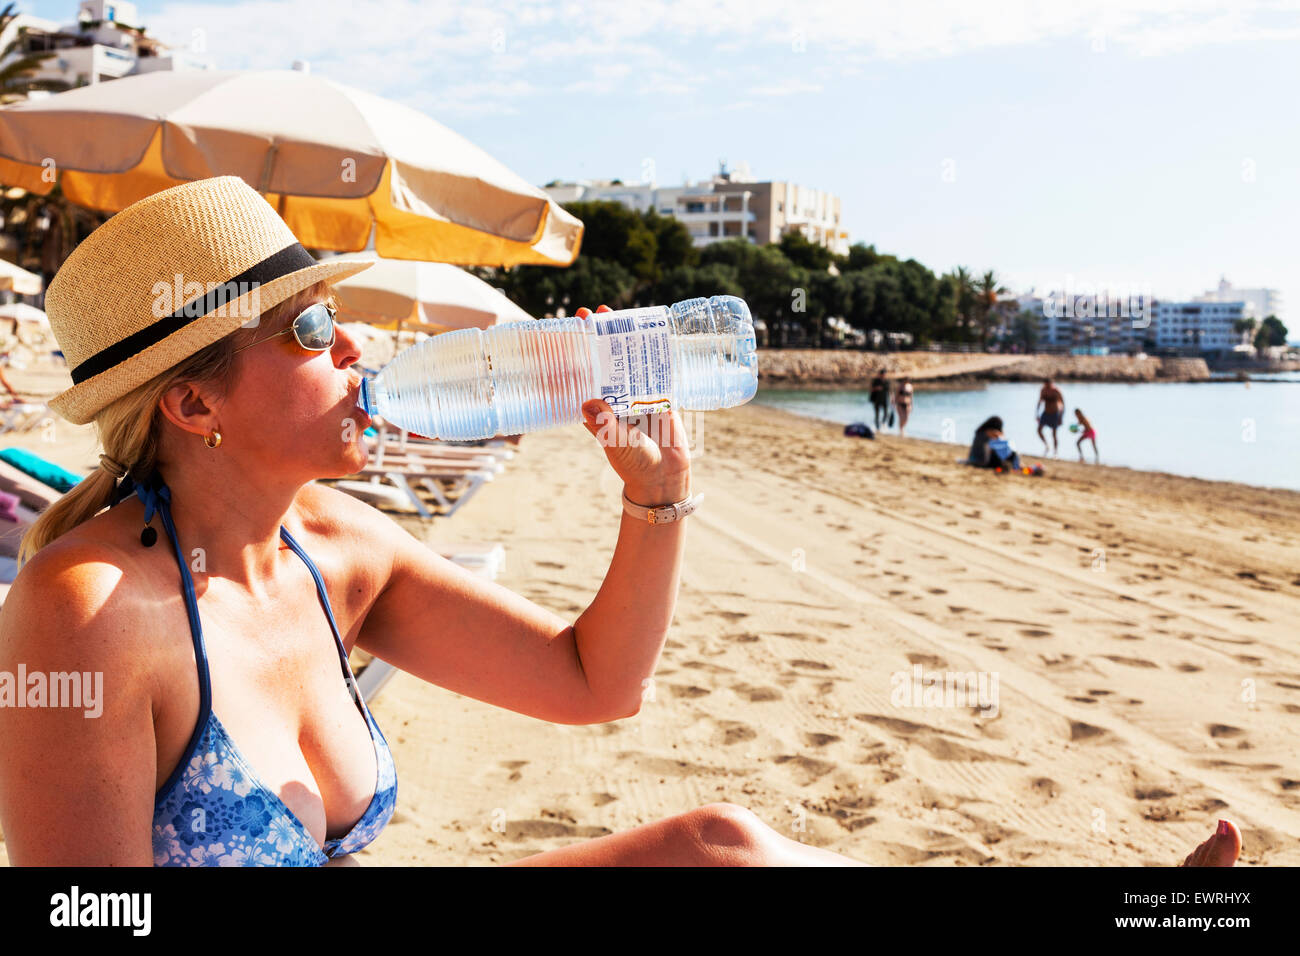 drinking drink water from bottle hydrating rehydrate rehydrating sun sunny summer thirst thirsty Ibiza Spain Spanish - Stock Image